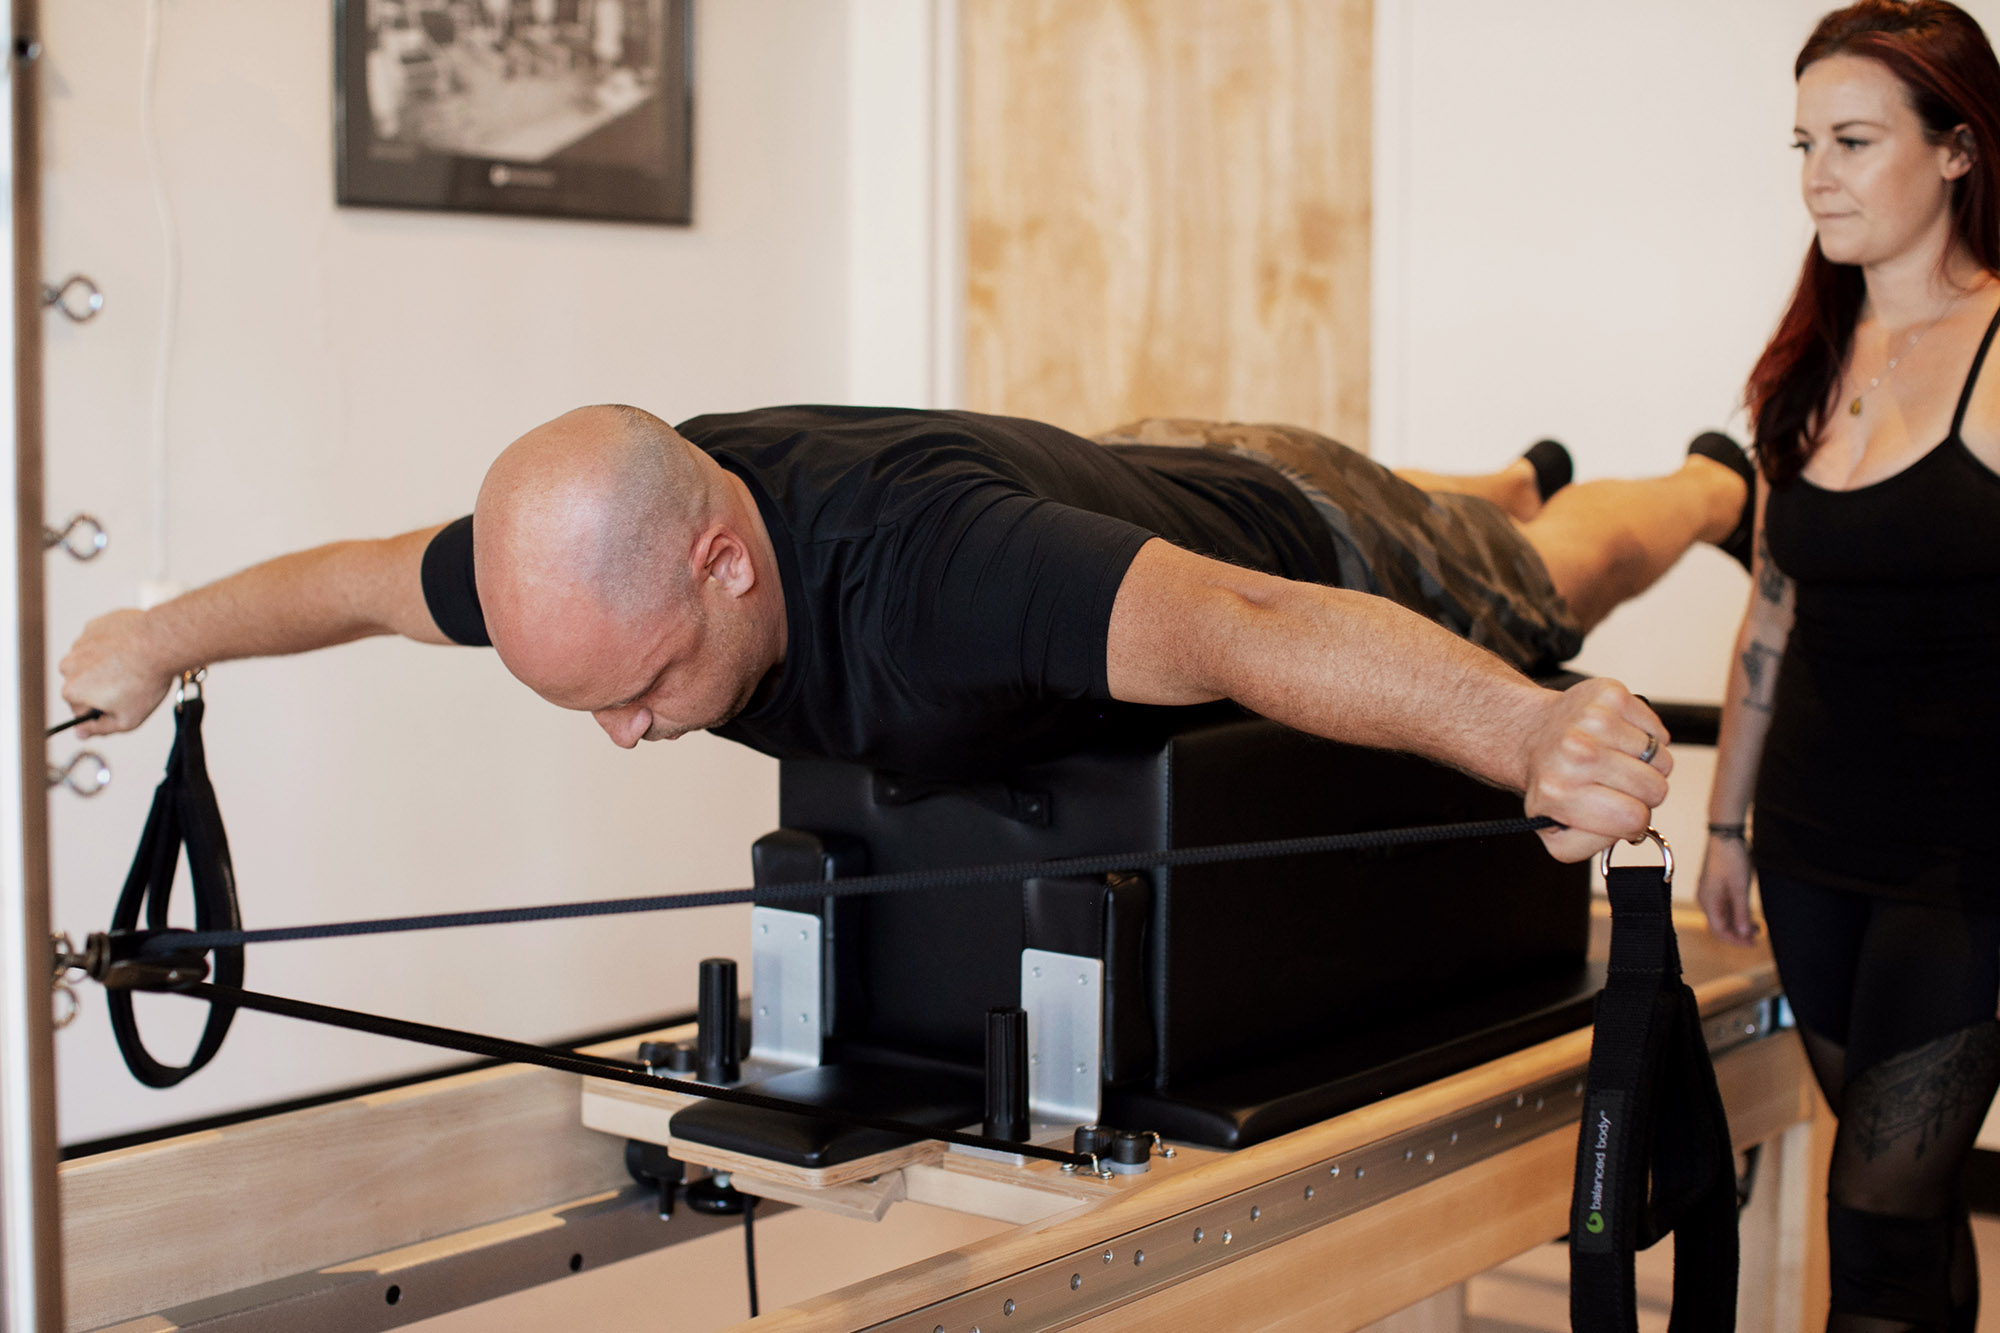 Male pilates student performs pulling straps on pilates reformer while female instructor teaches him.